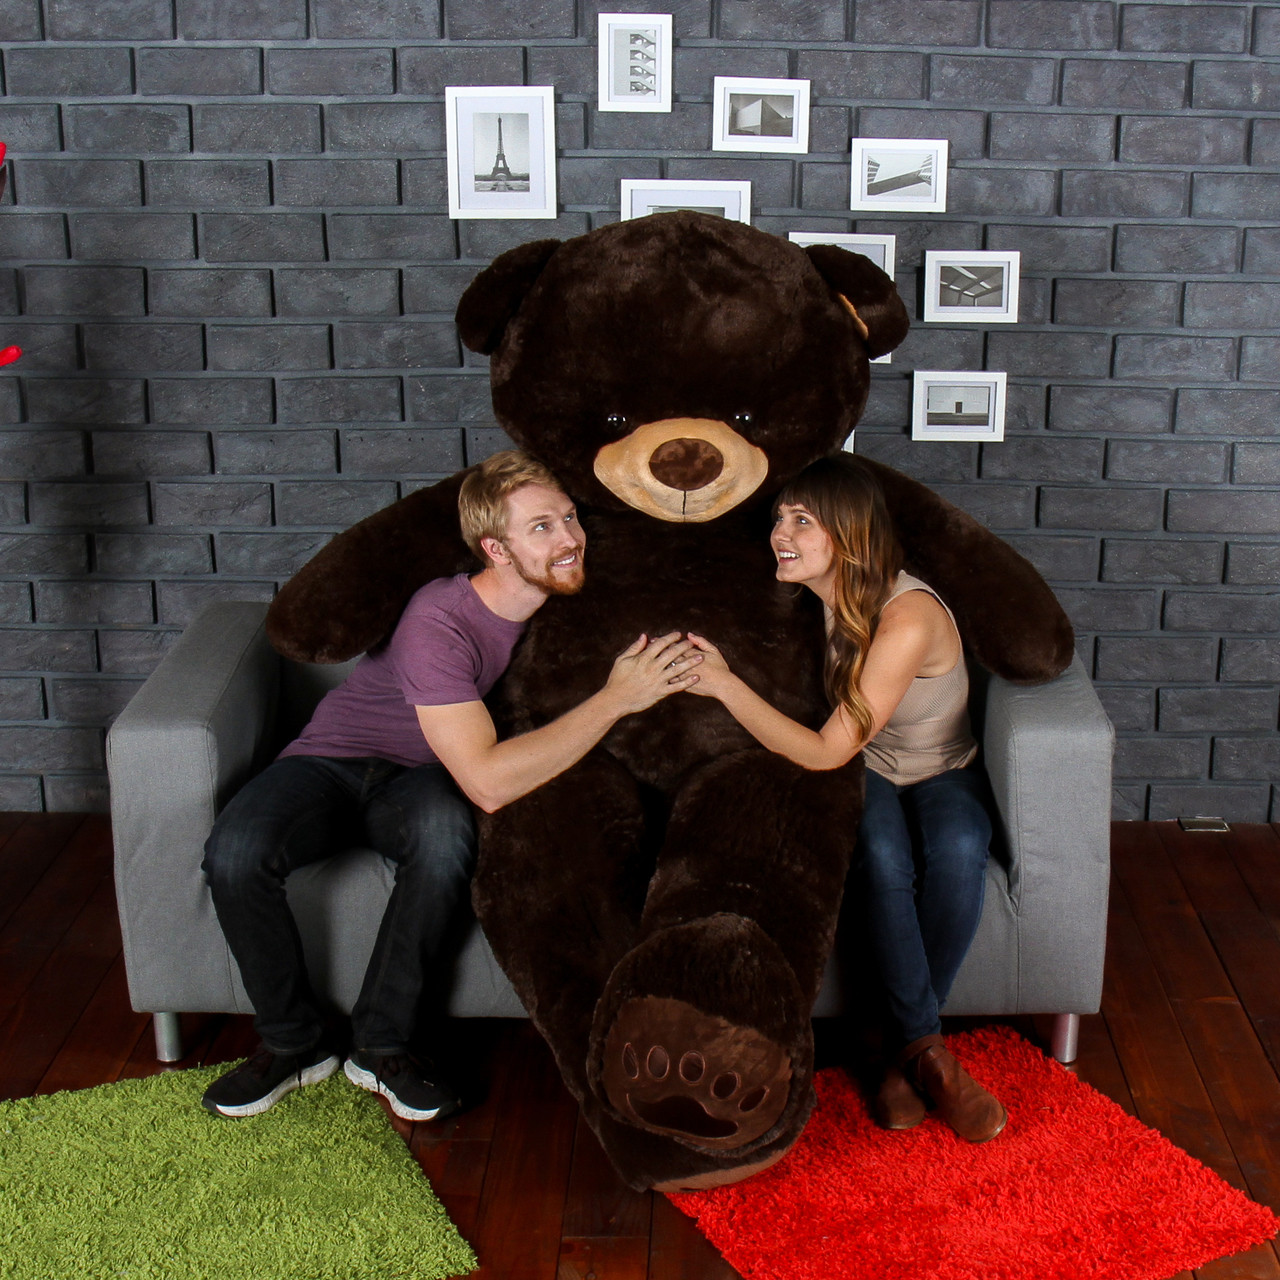 Giant Teddy Chocolate Brown Teddy Bear Enourmous 7 Foot Tall! Biggest Teddy Bear!